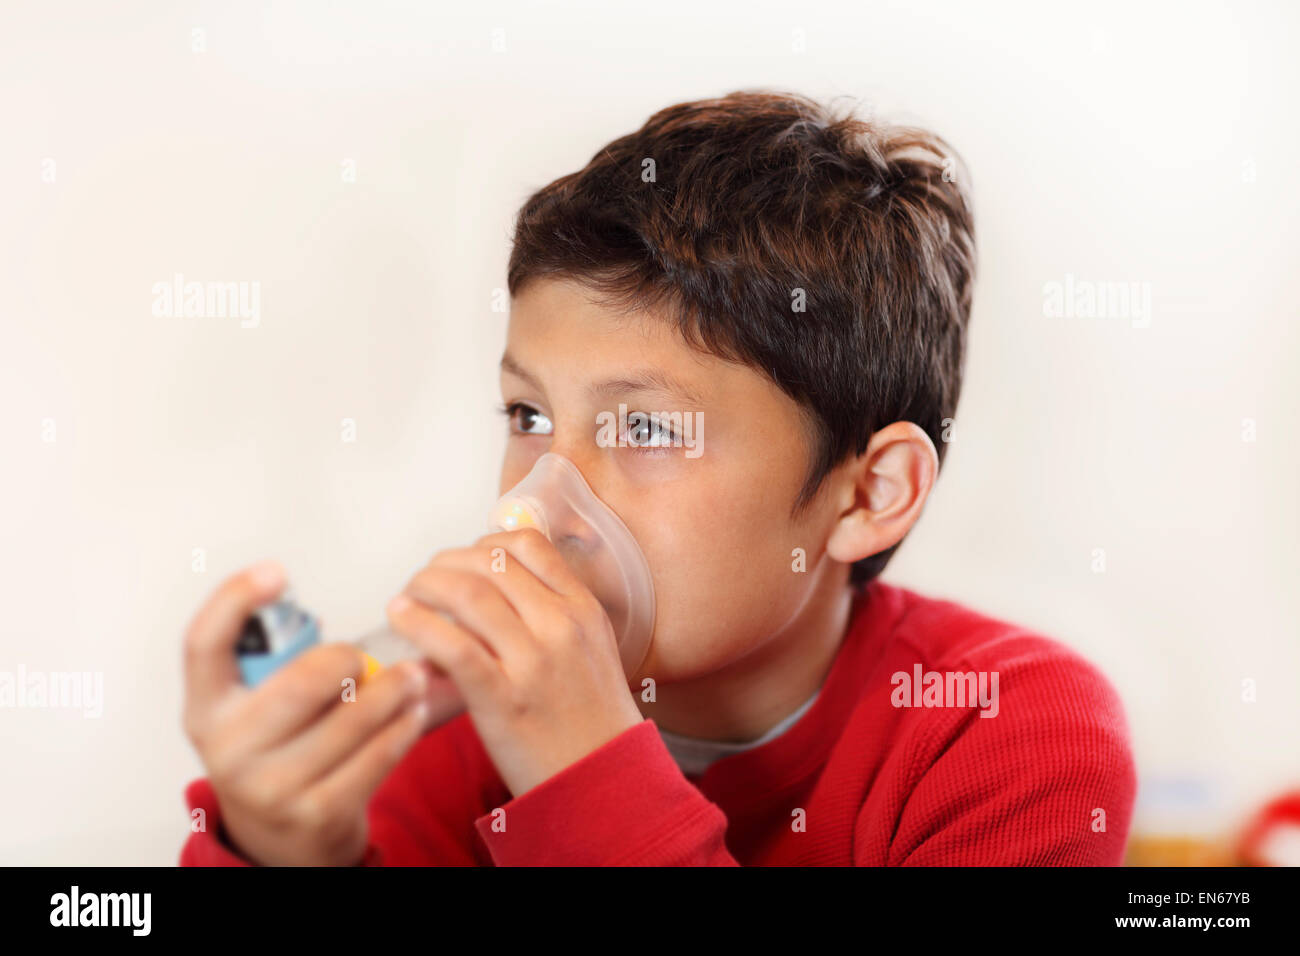 Young boy using inhaler on white background - with shallow depth of field - Stock Image